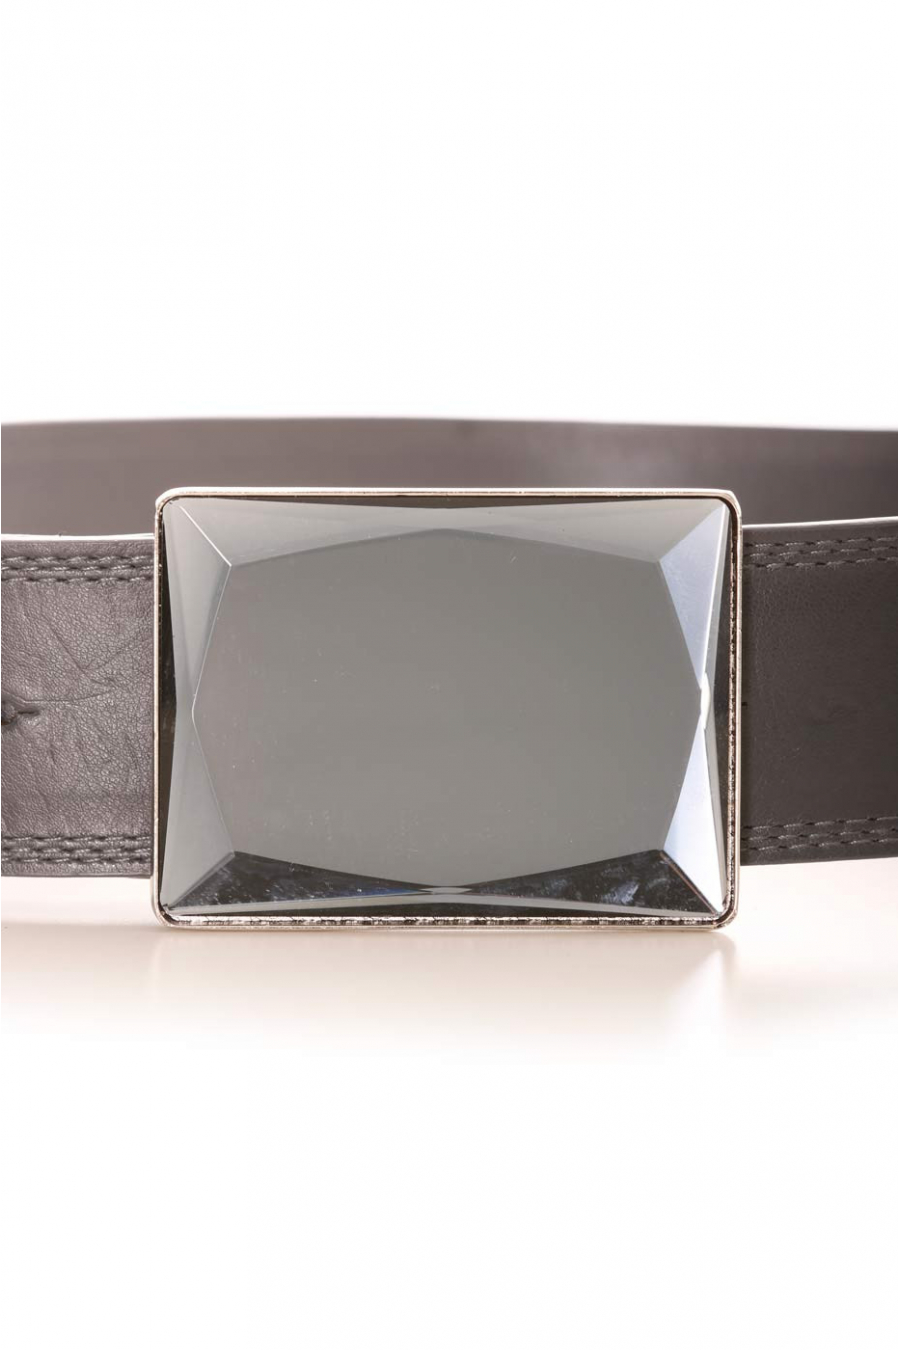 Dark gray belt with square mirror-effect buckle. Accessory LDF0058